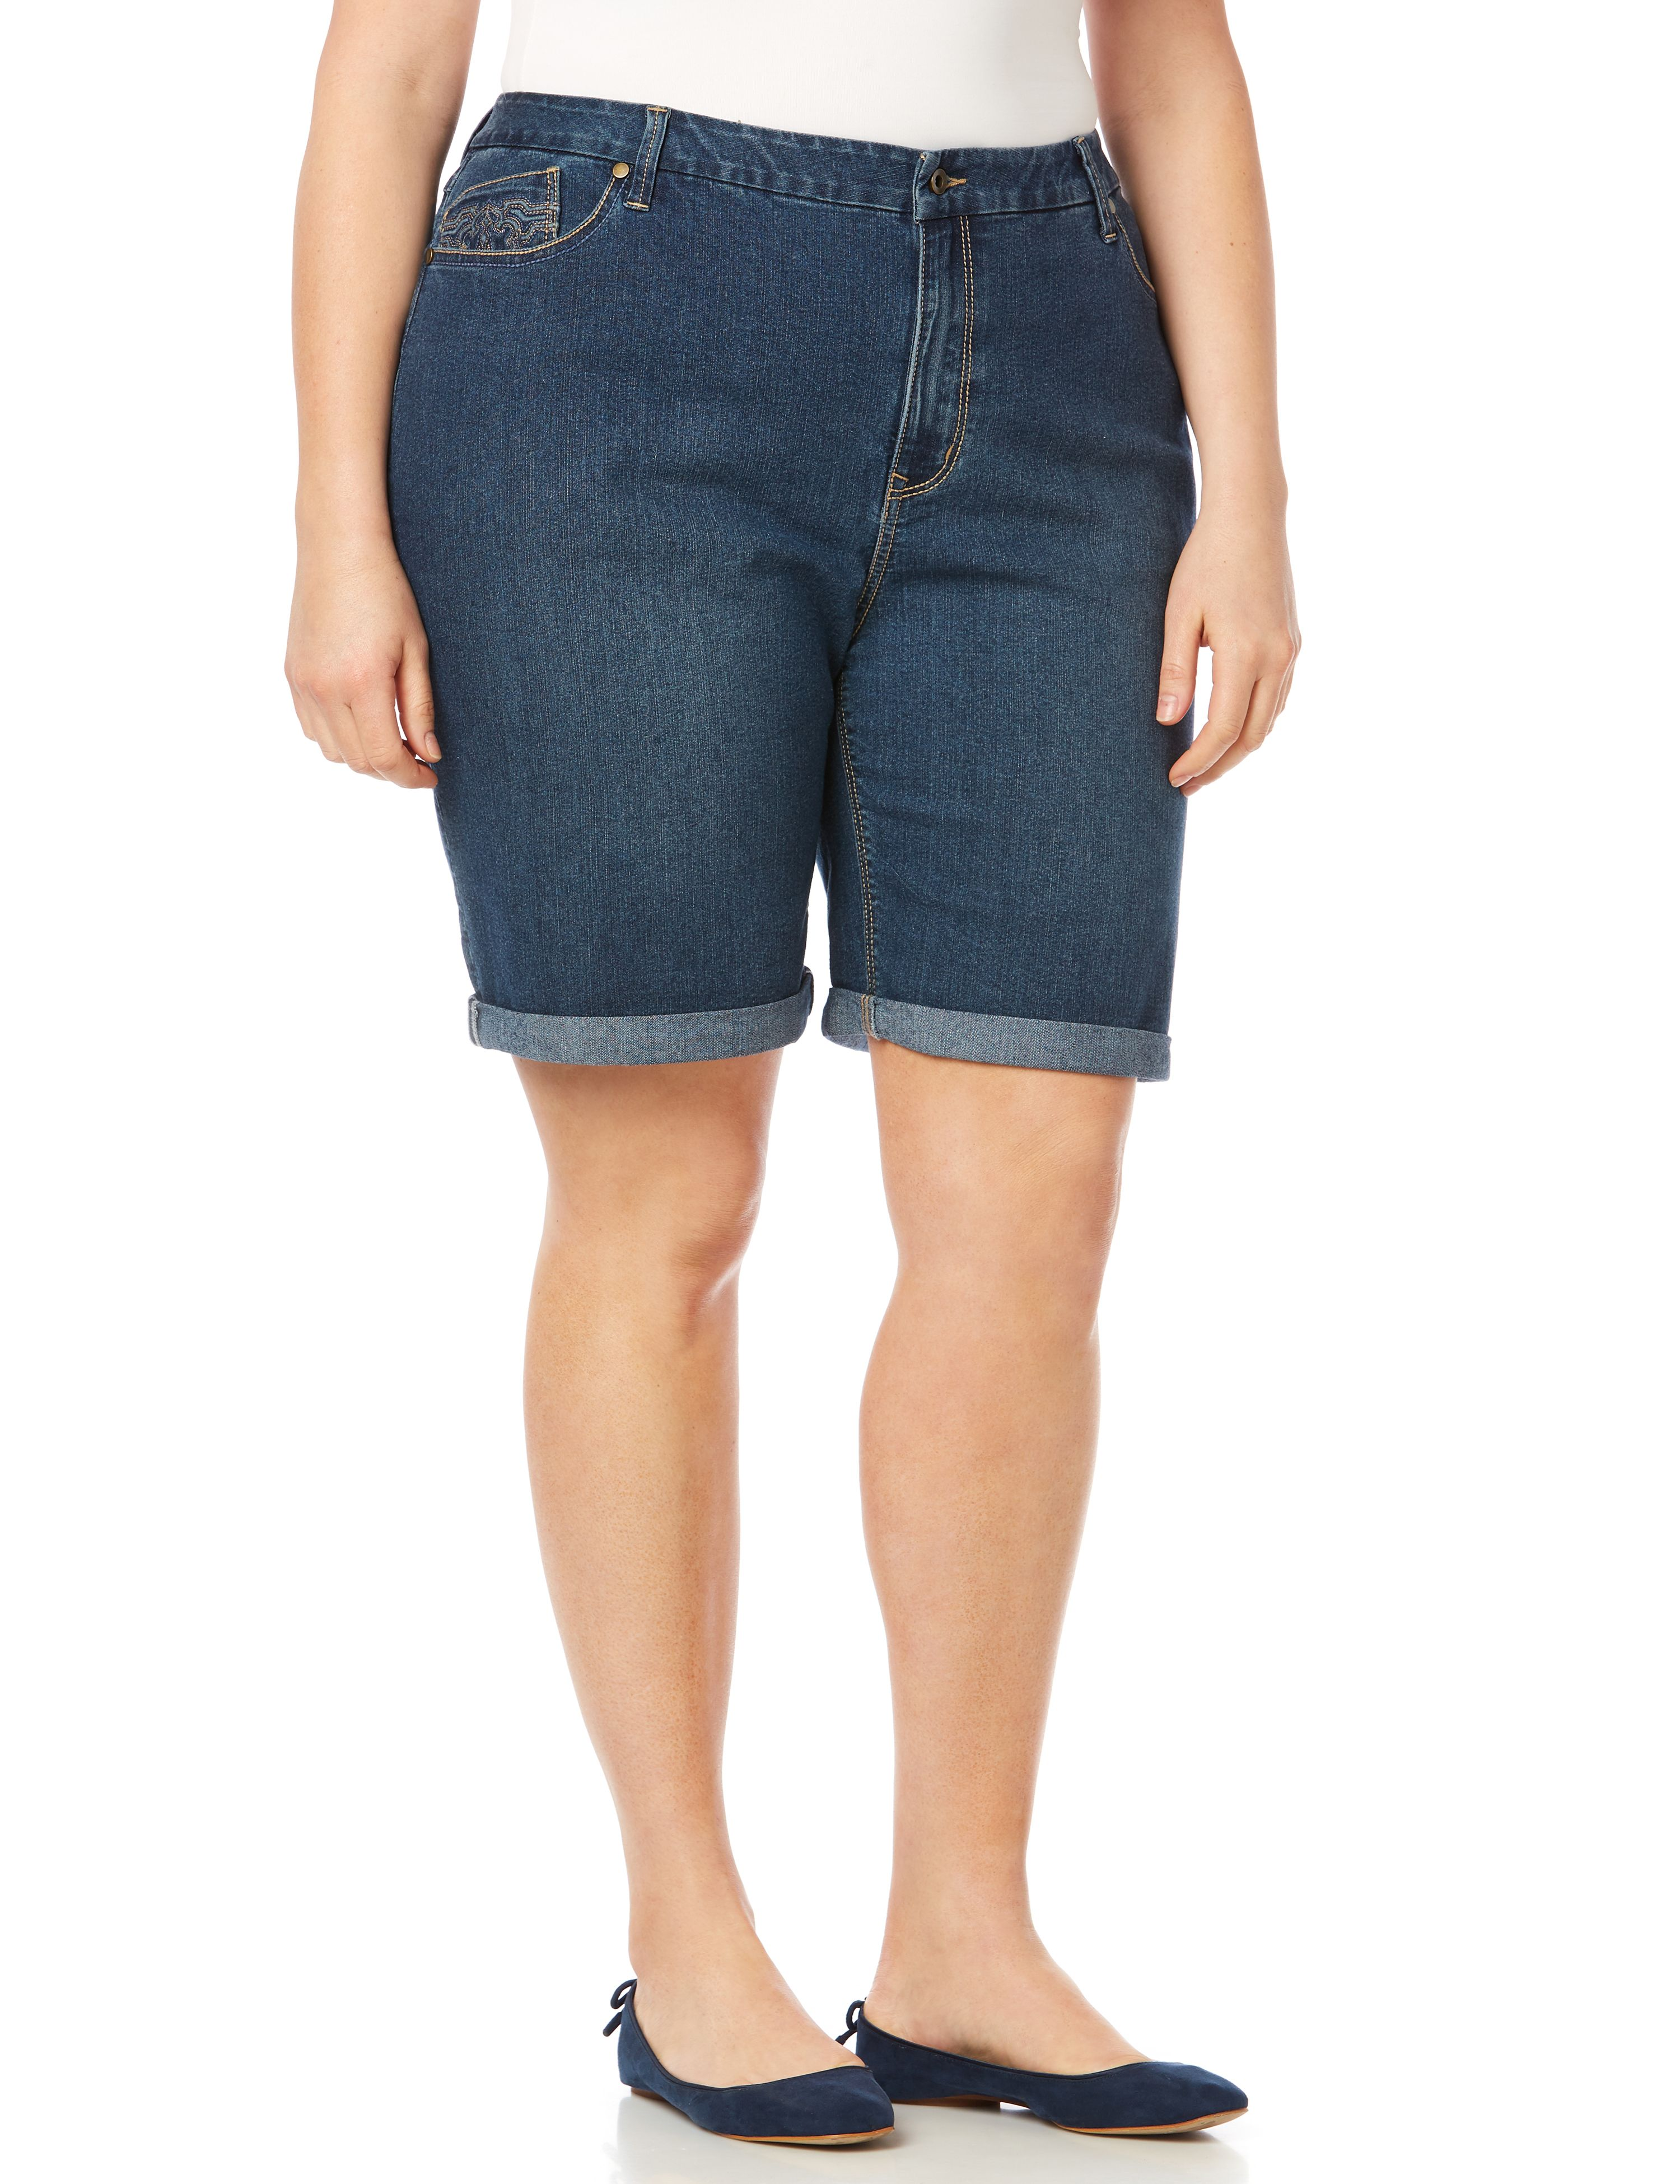 Cuffed Denim Short 1087351 Cuffed Denim Short, 11